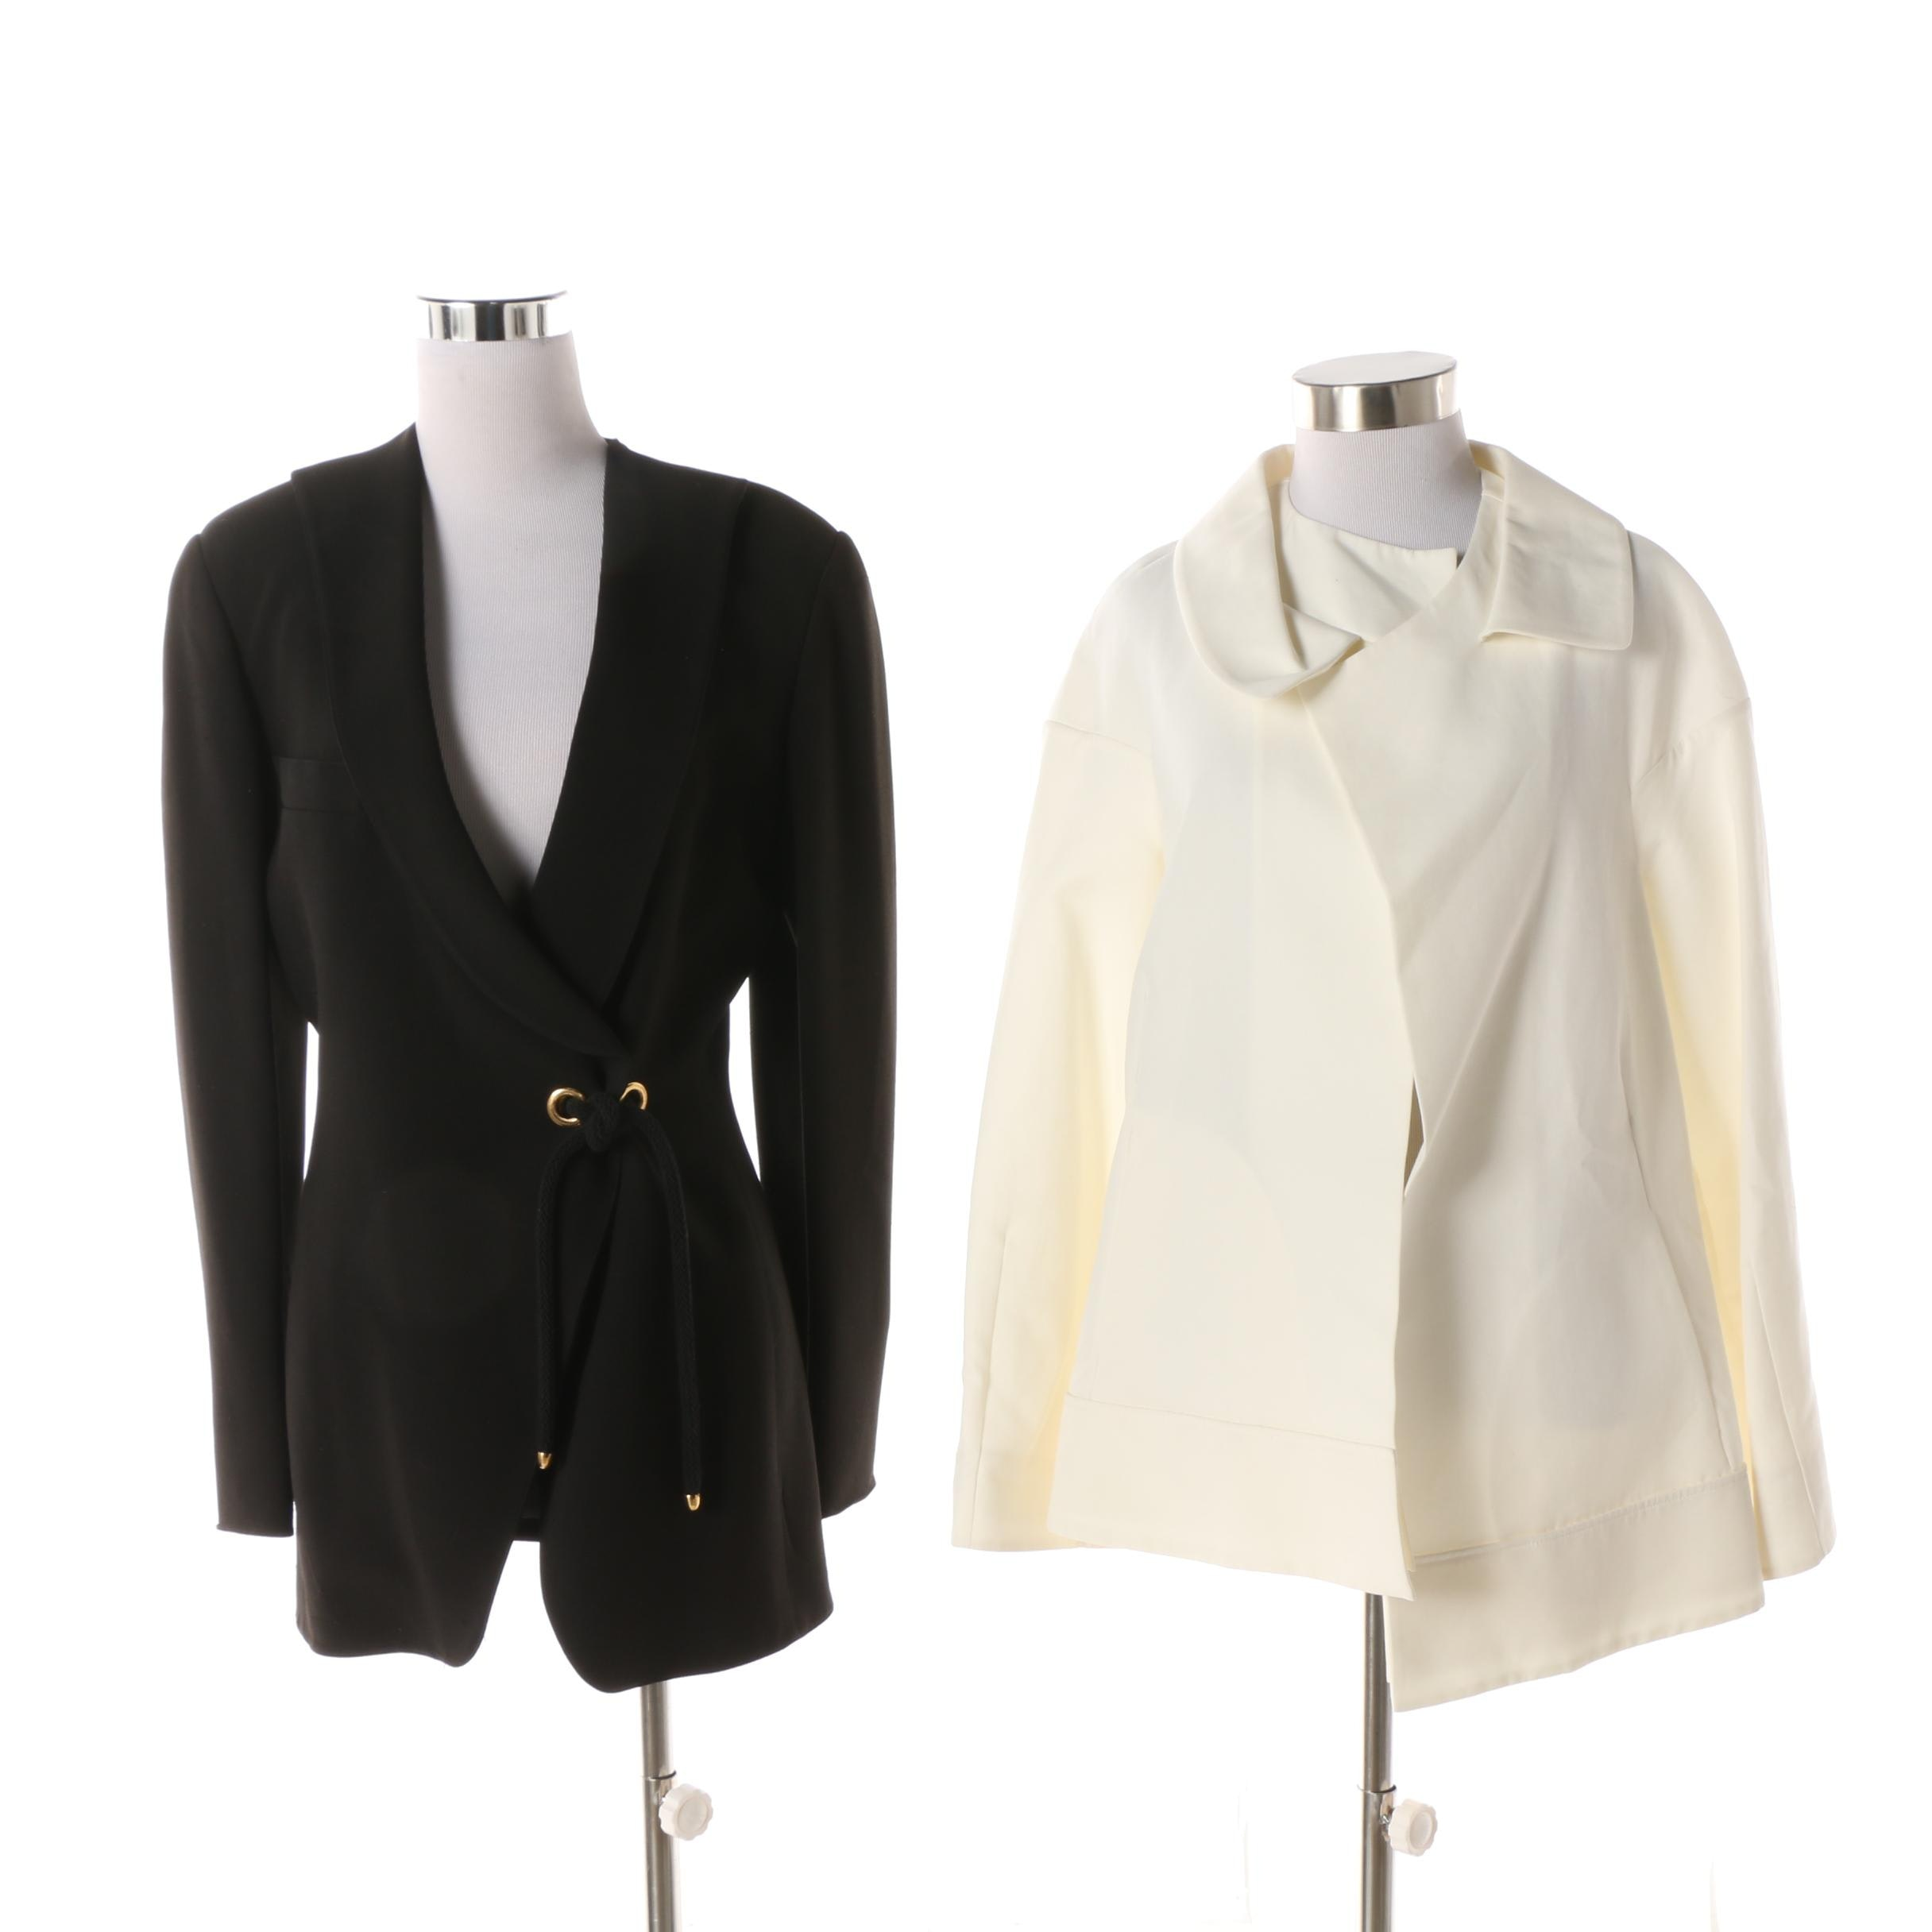 Women's Vintage Marni White Cotton Jacket and Claude Montana Black Wool Jacket